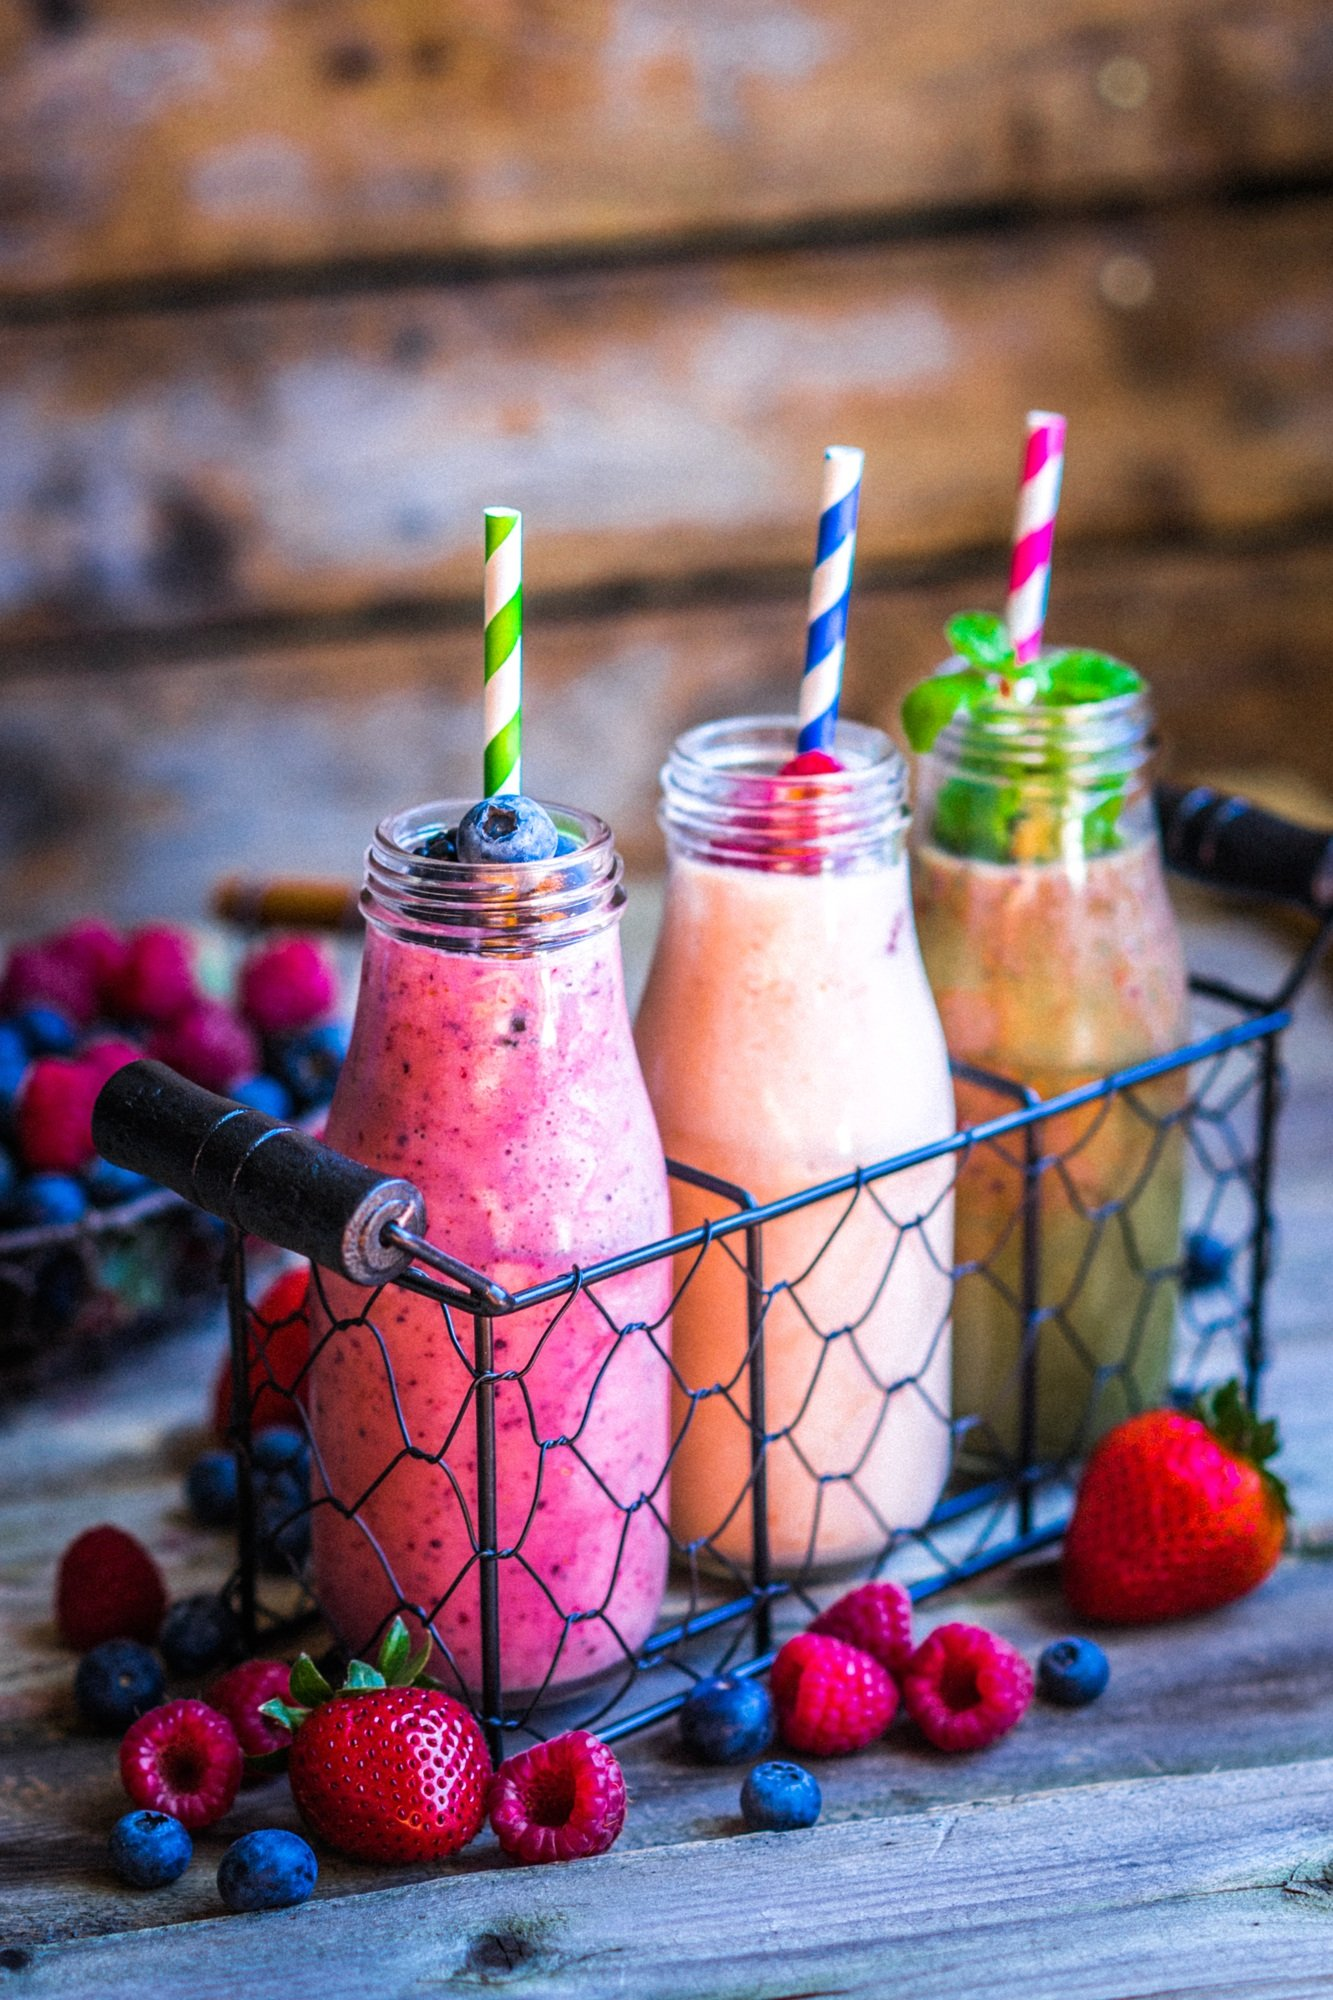 Start you vacation with a healthy smoothie